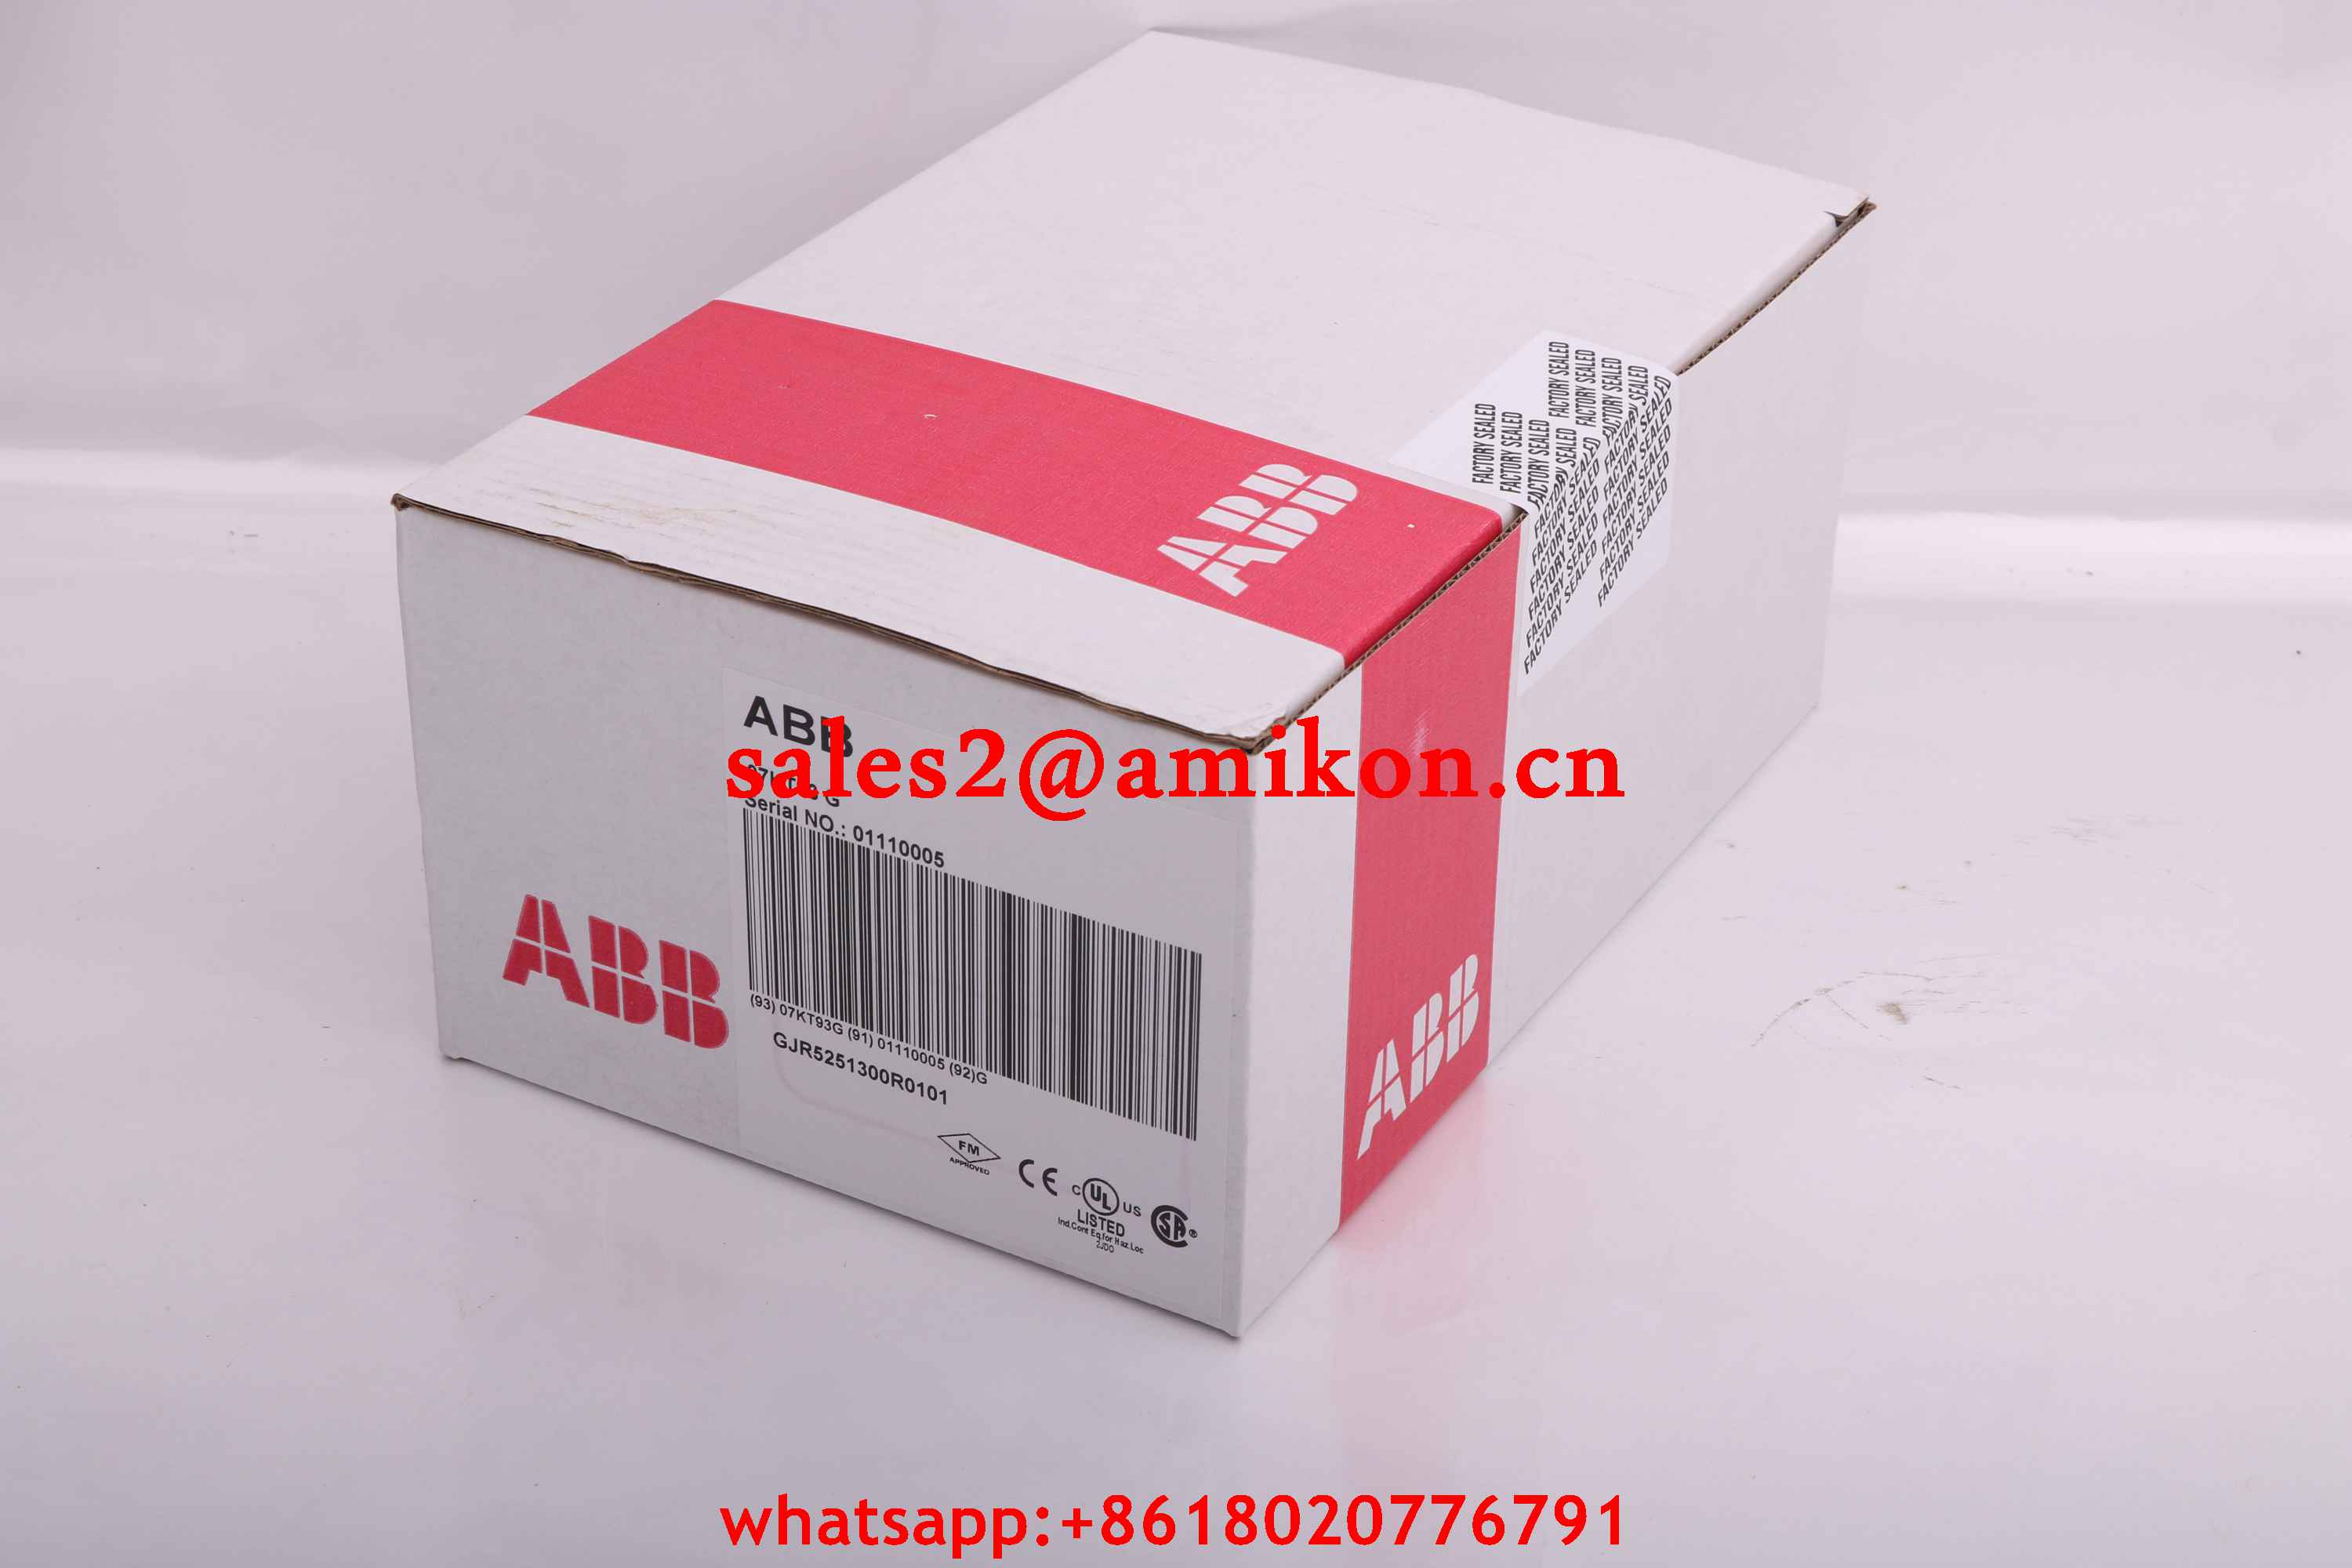 YB560103-AS DSQC 208A External axis board ABB | Robot spare parts | PLC DCS Parts T/T 100% New In stock